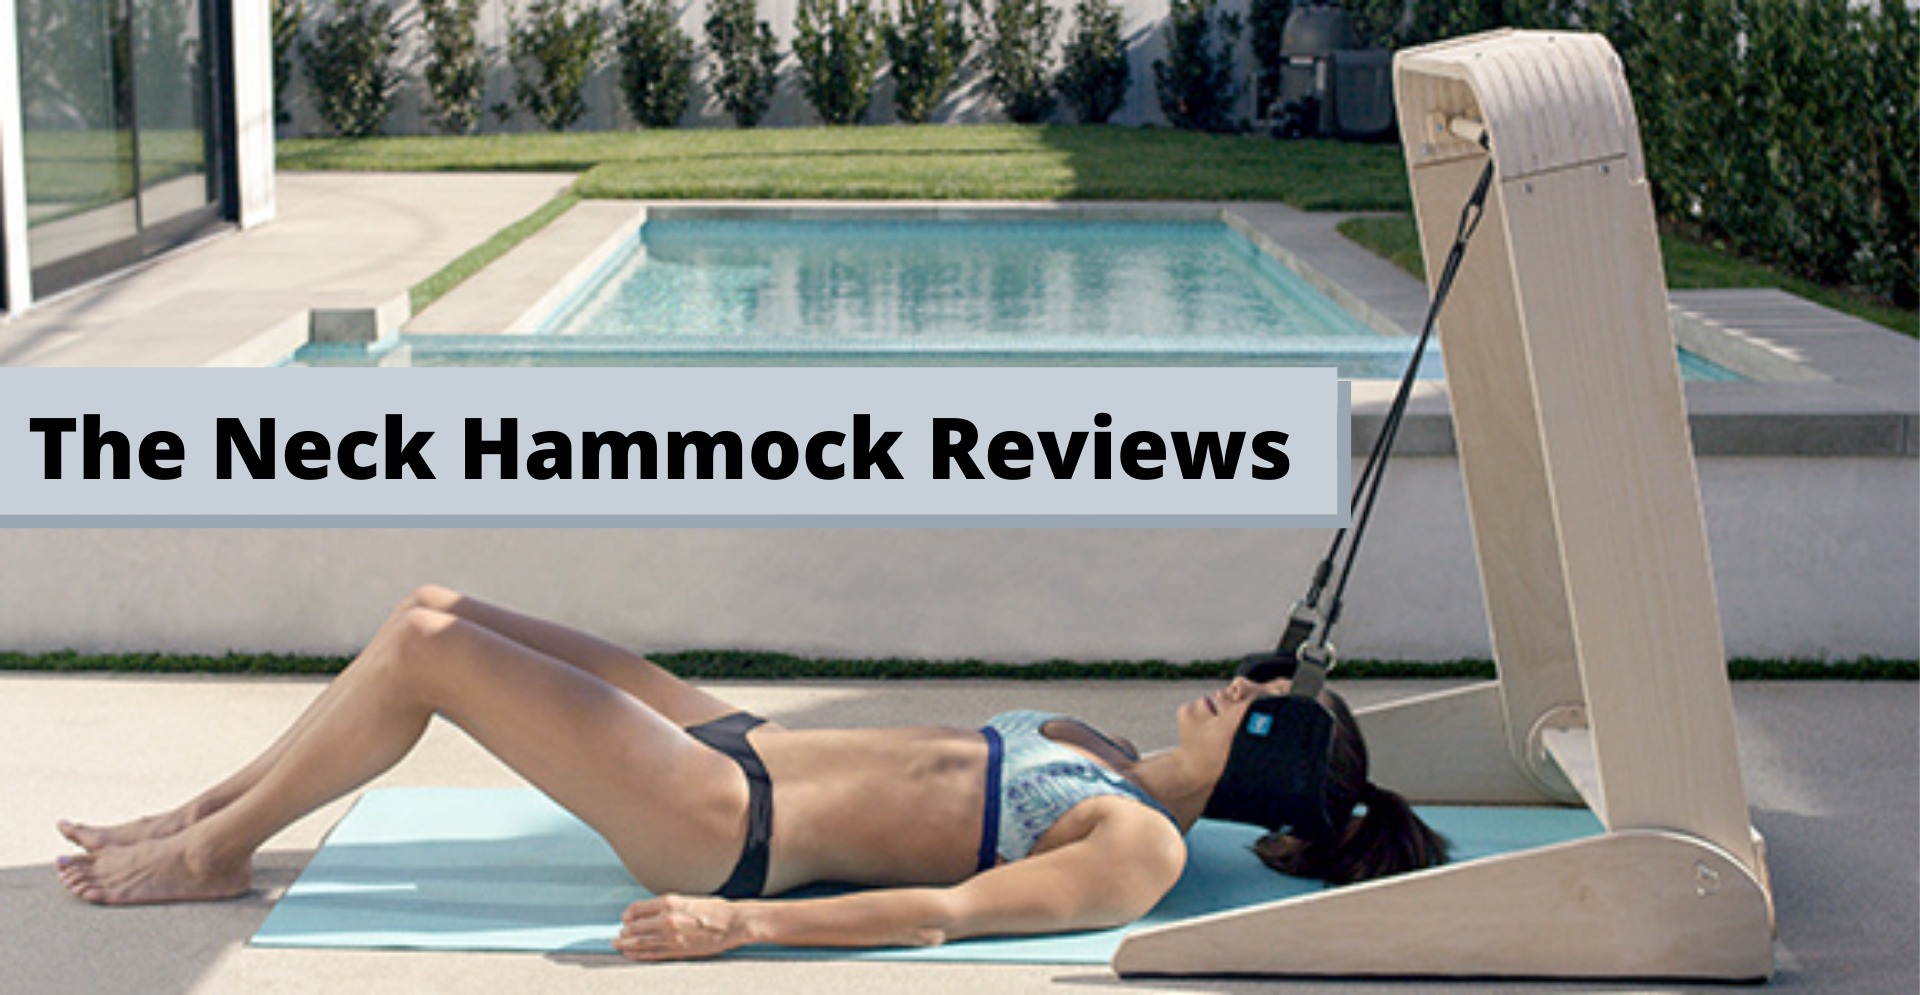 The Neck Hammock Reviews